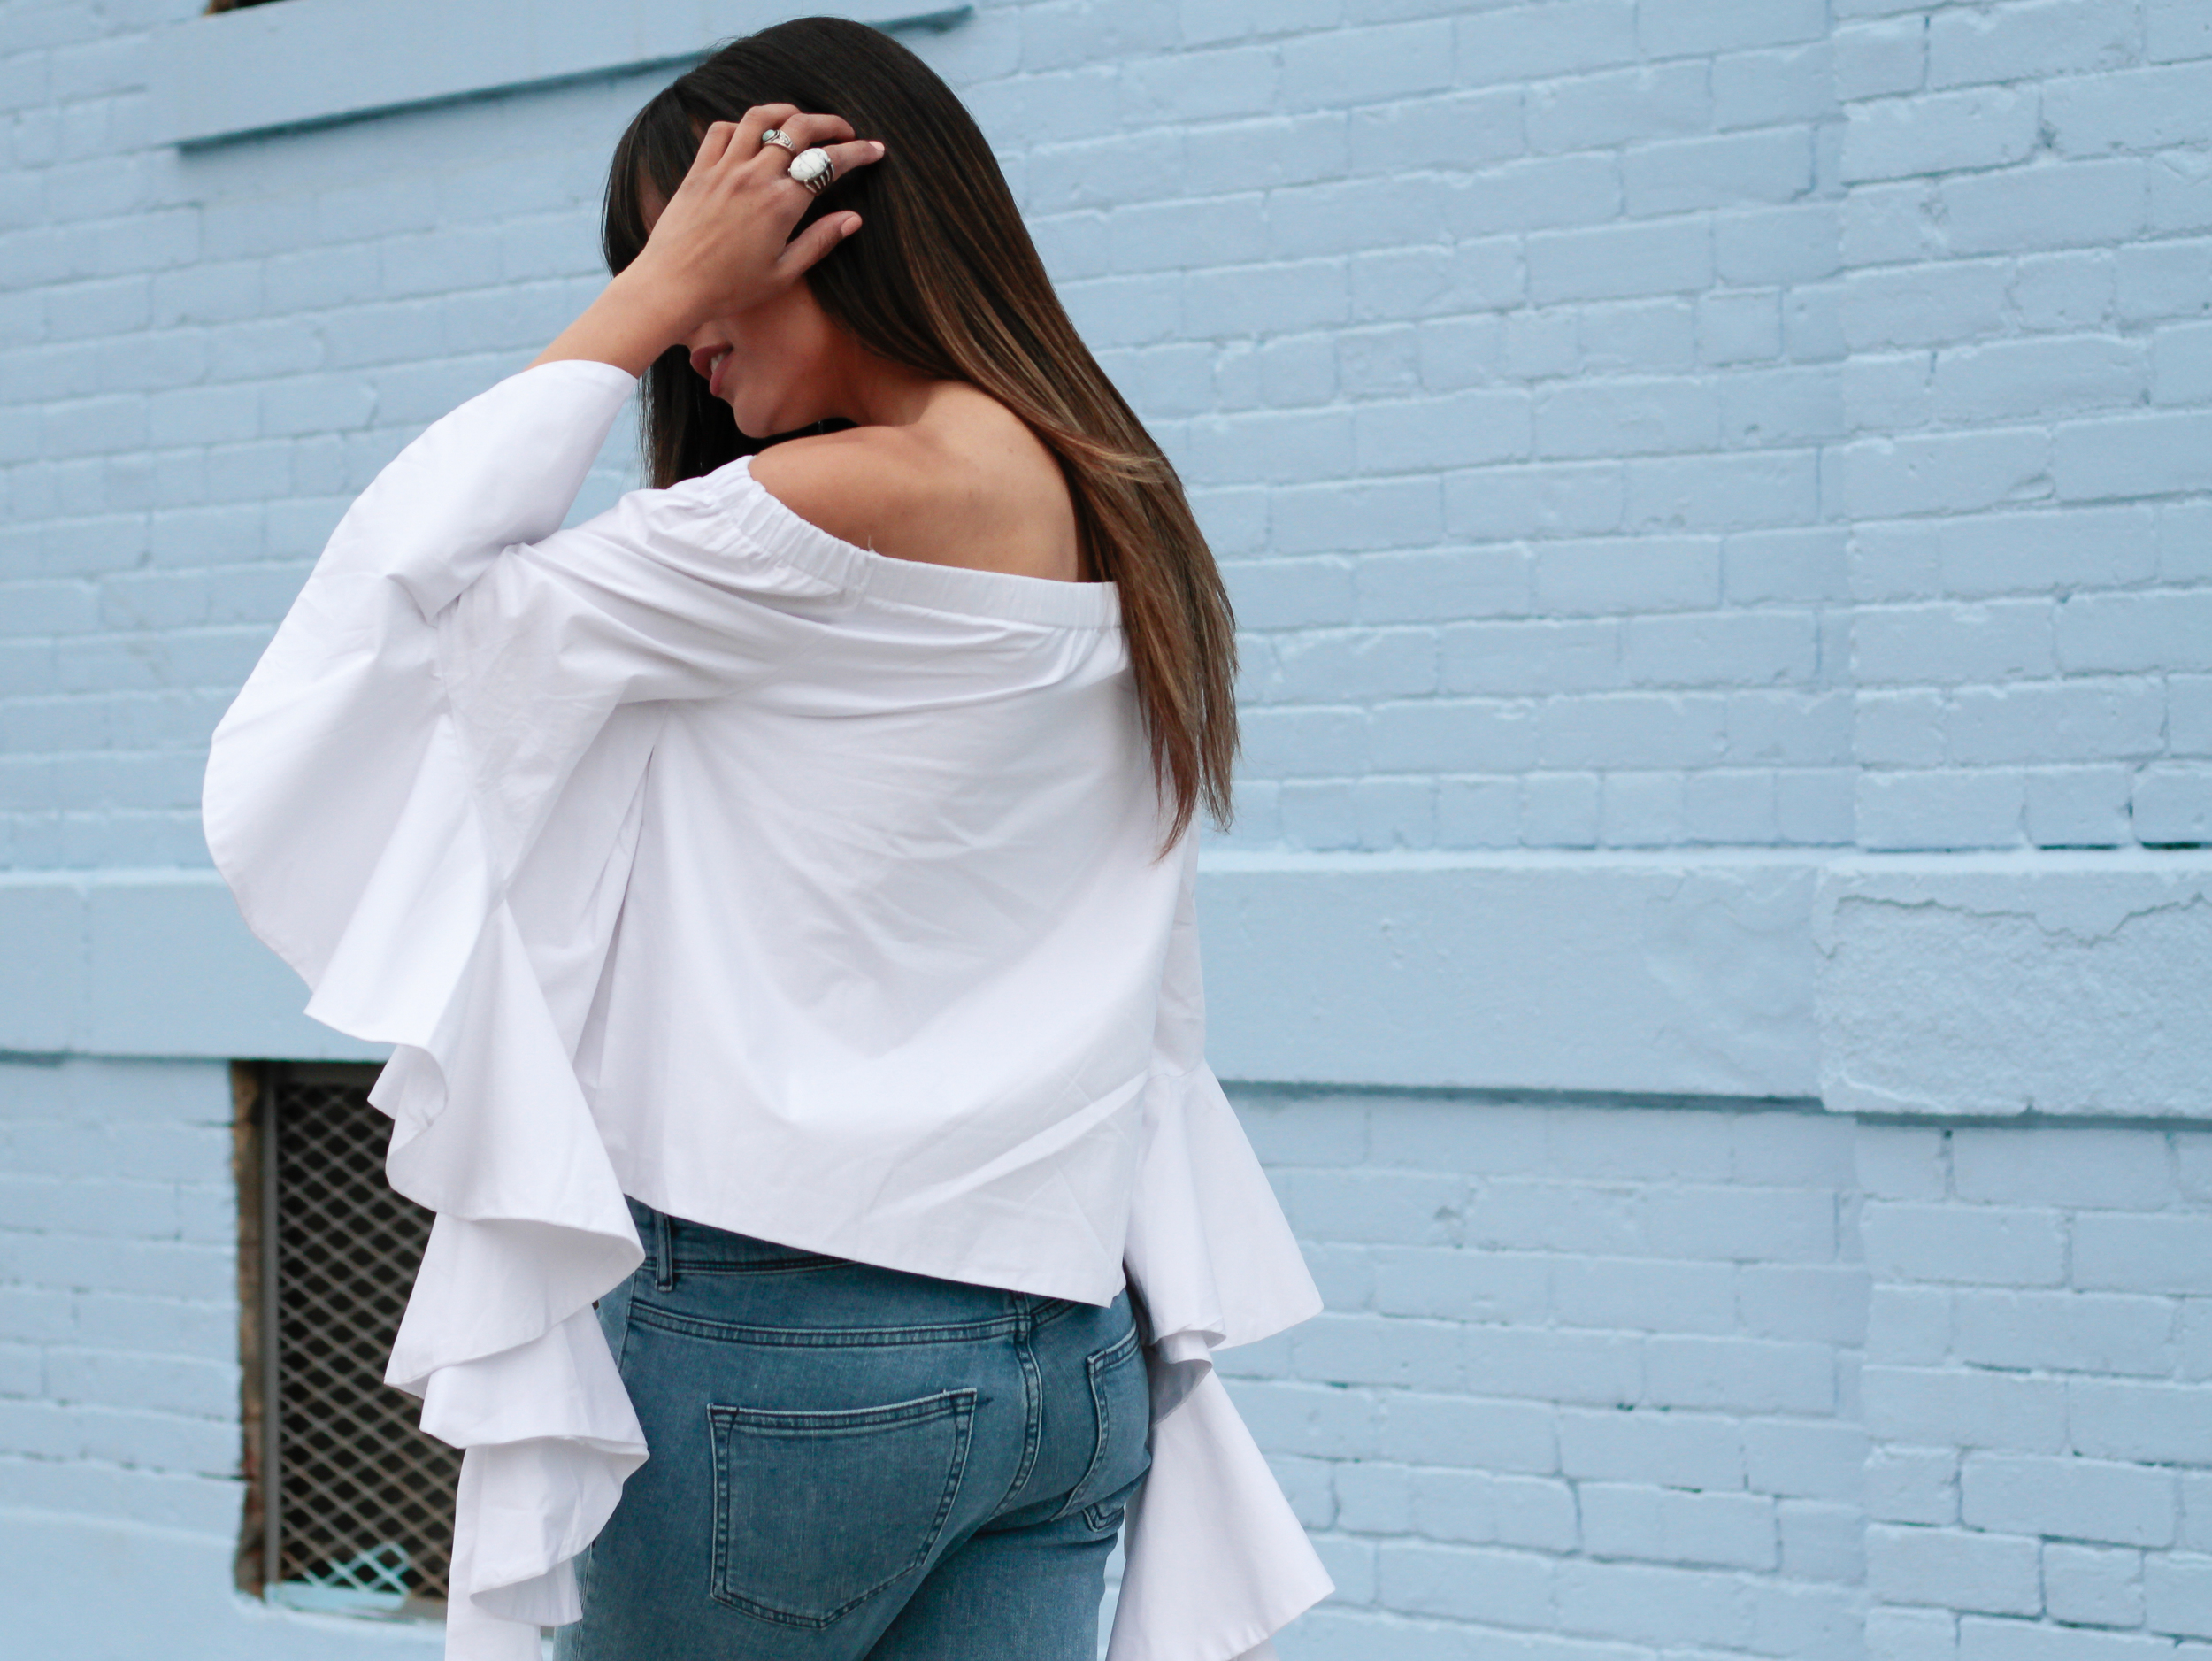 style-mafia-brooklyn-fashion-bloggers-off-the-shoulder-top-ruffle-sleeves